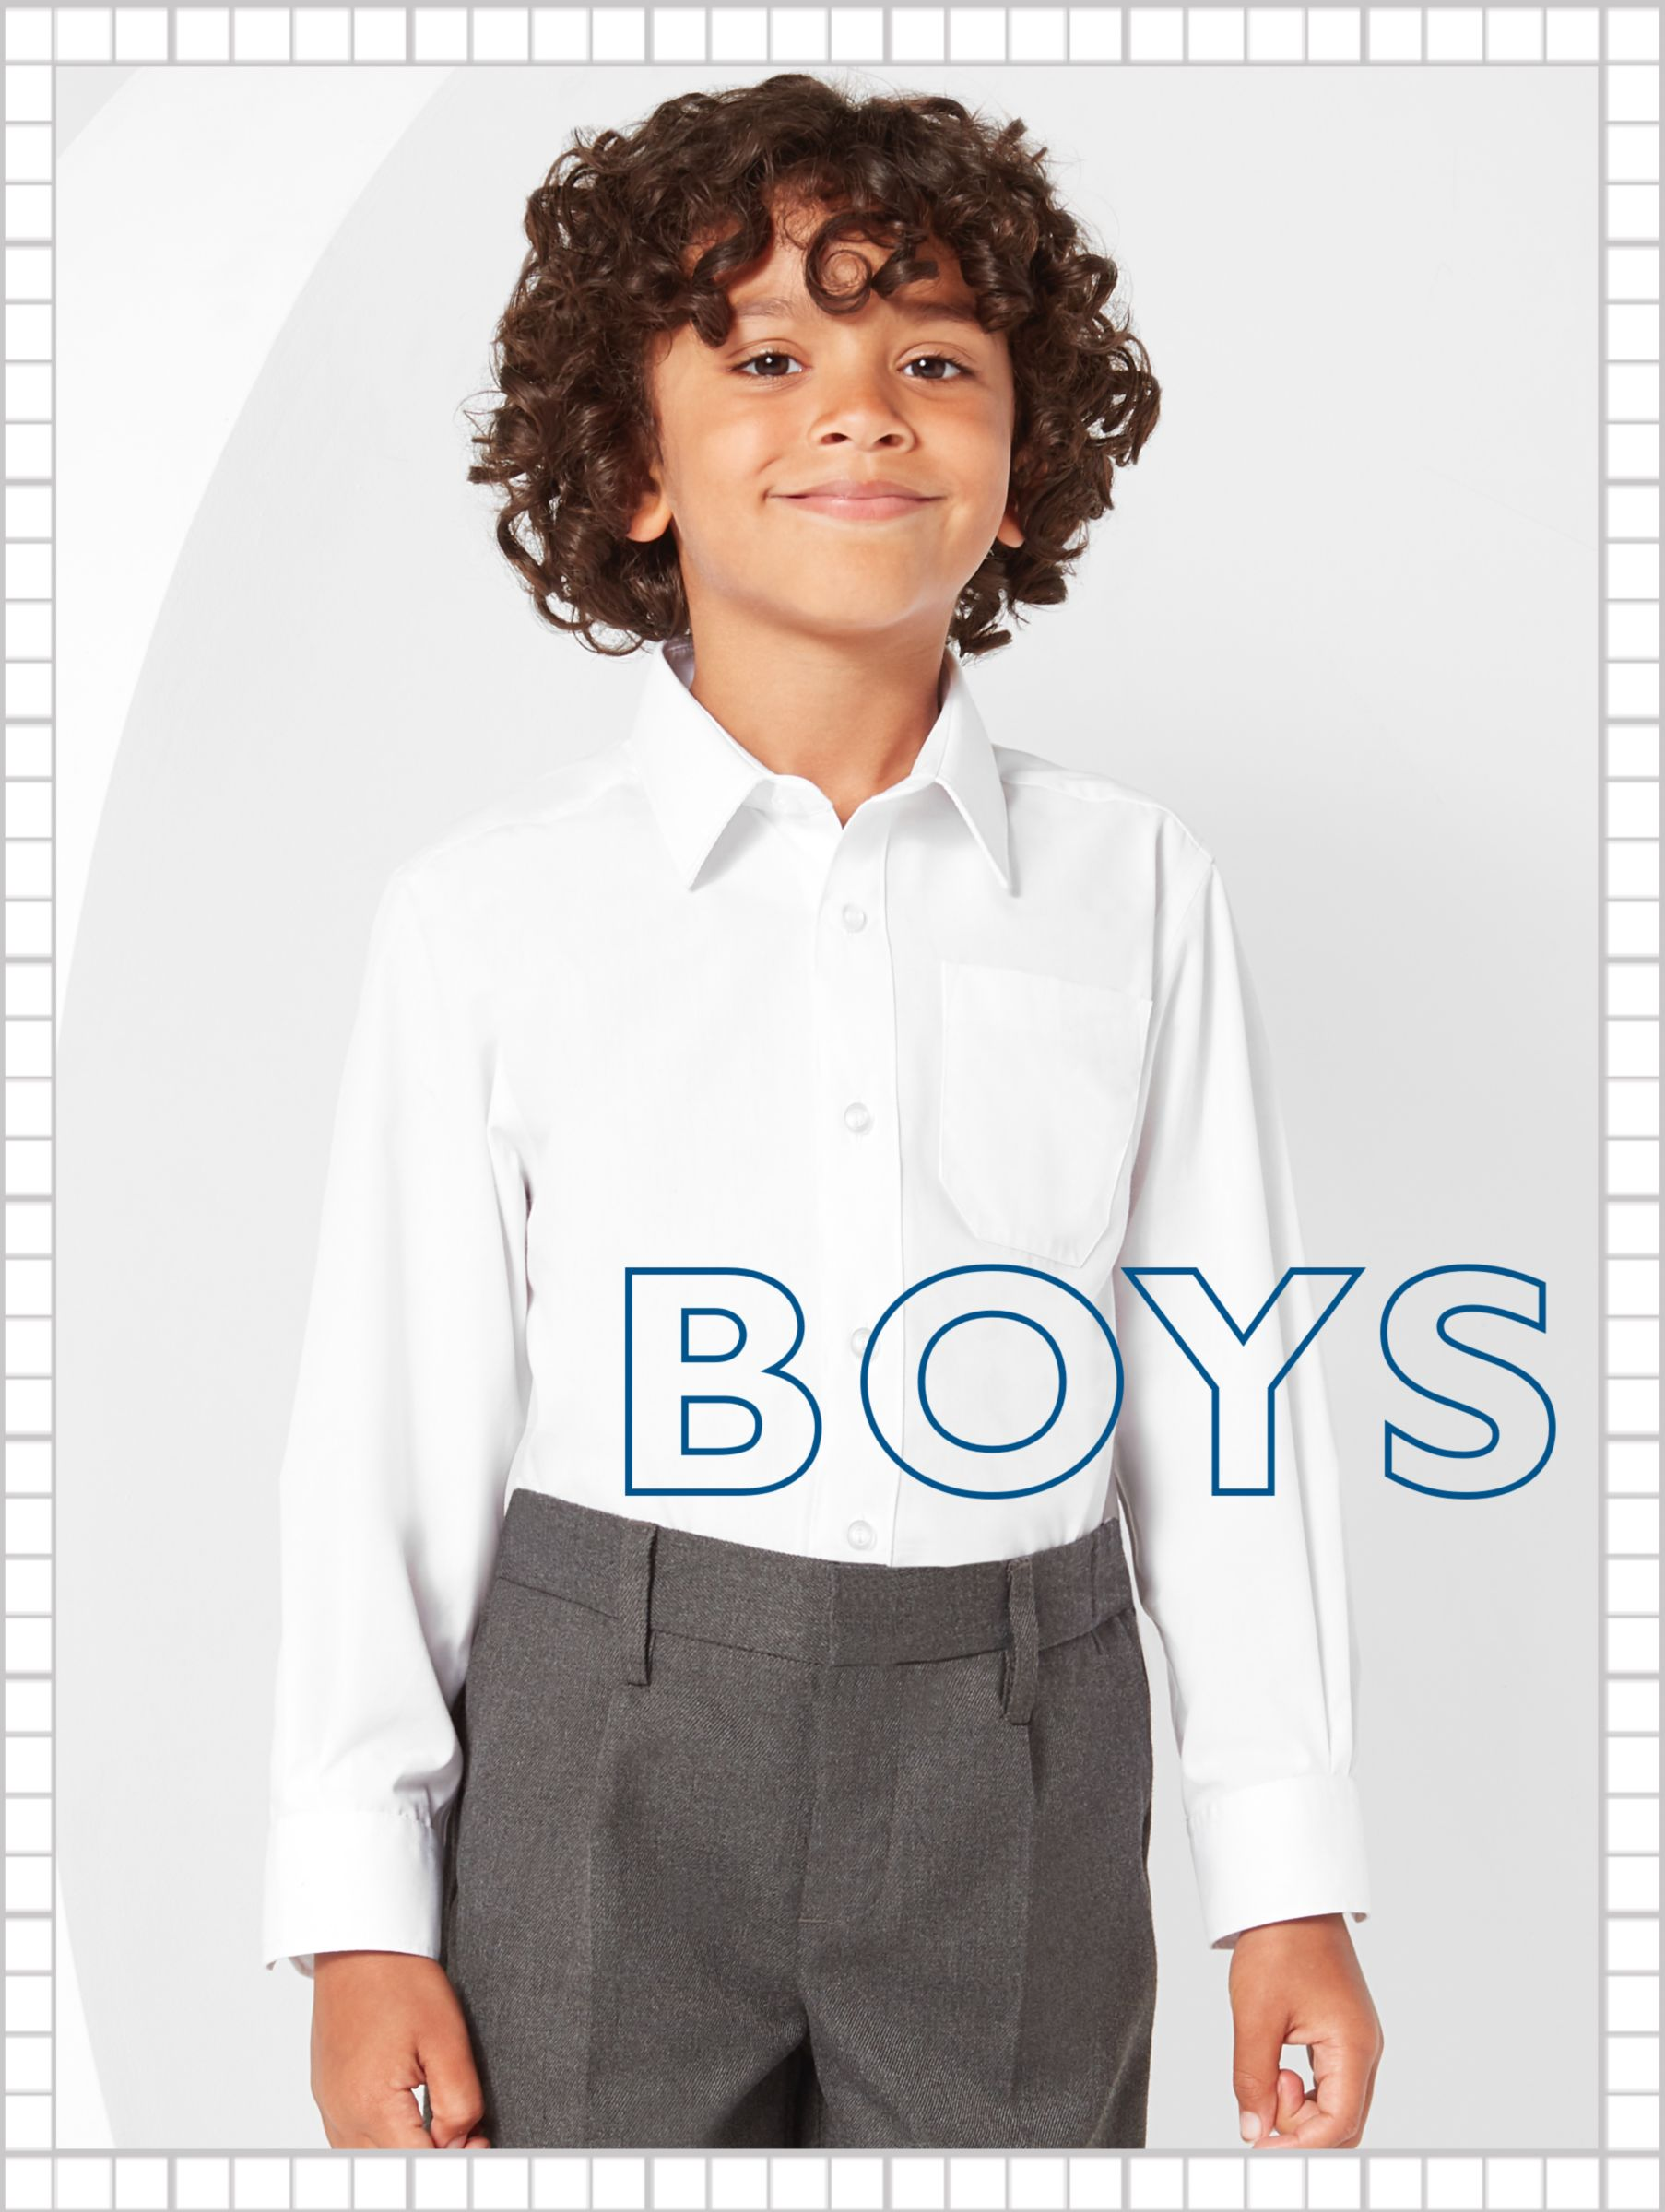 All Boys School Uniform